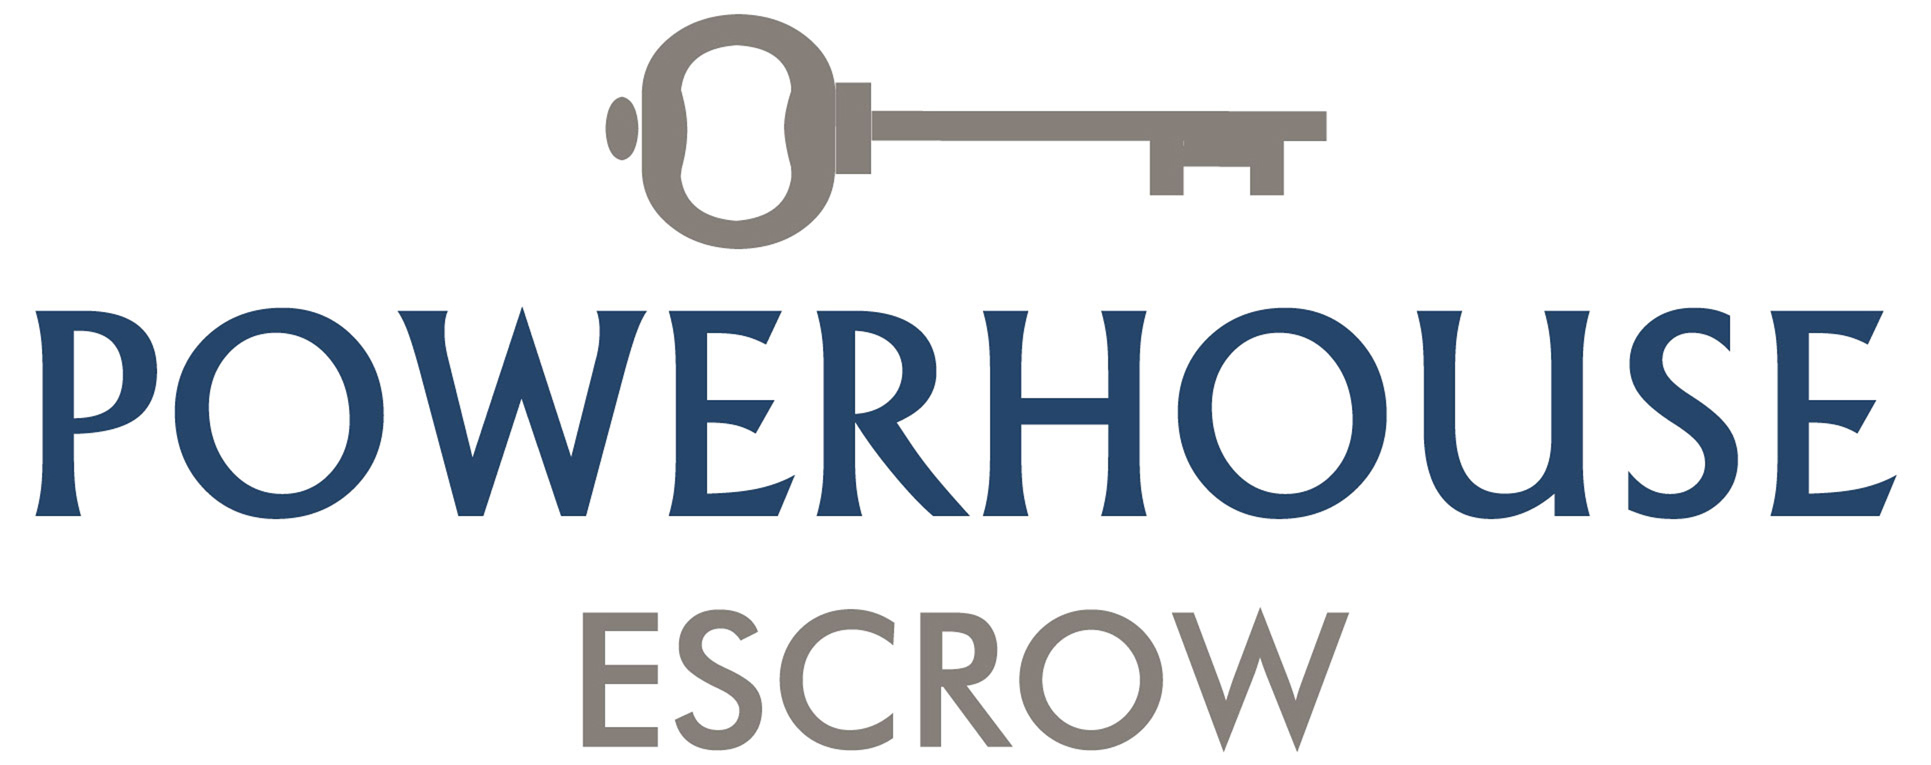 Powerhouse Escrow Santa Clarita CA Independent